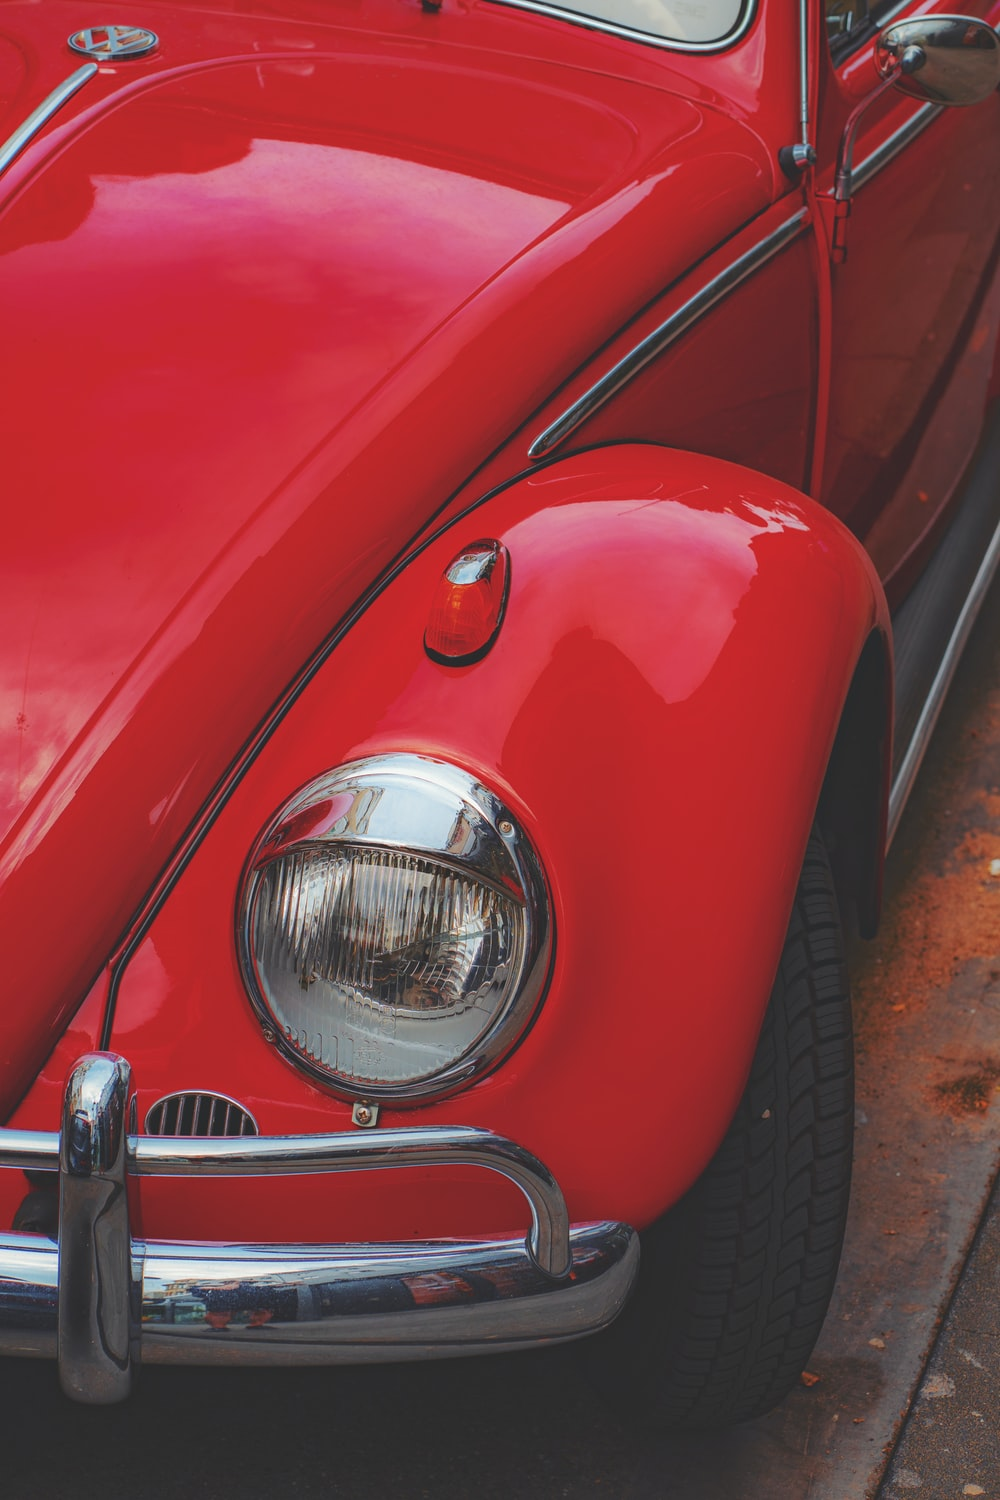 red Volkswagen Beetle coupe in close-up photo